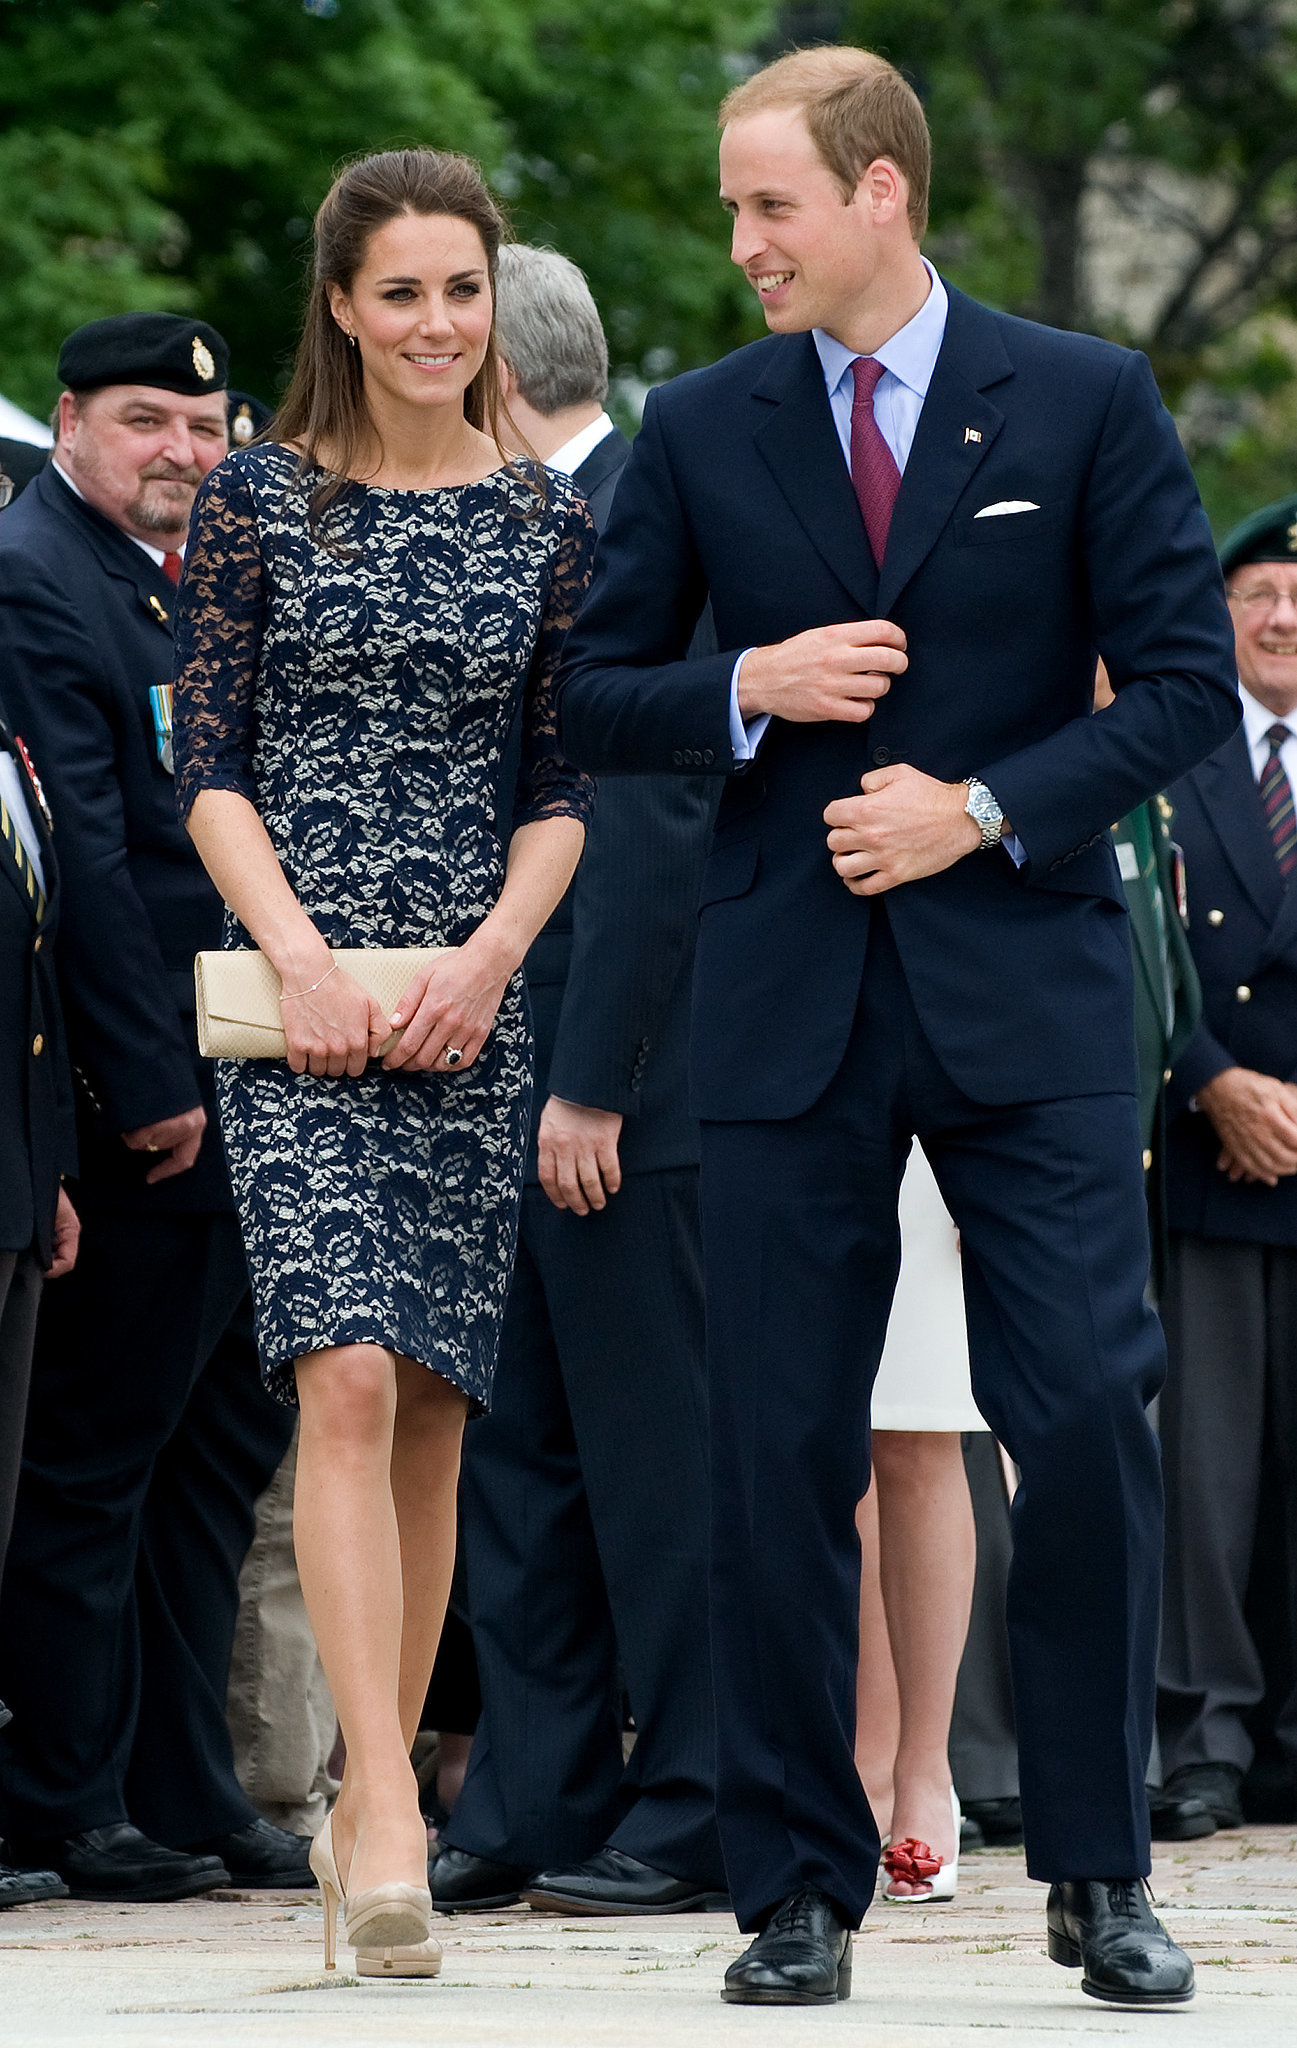 Prince William and Kate Middleton were all smiles while touring Ottowa, Canada, in June 2011.